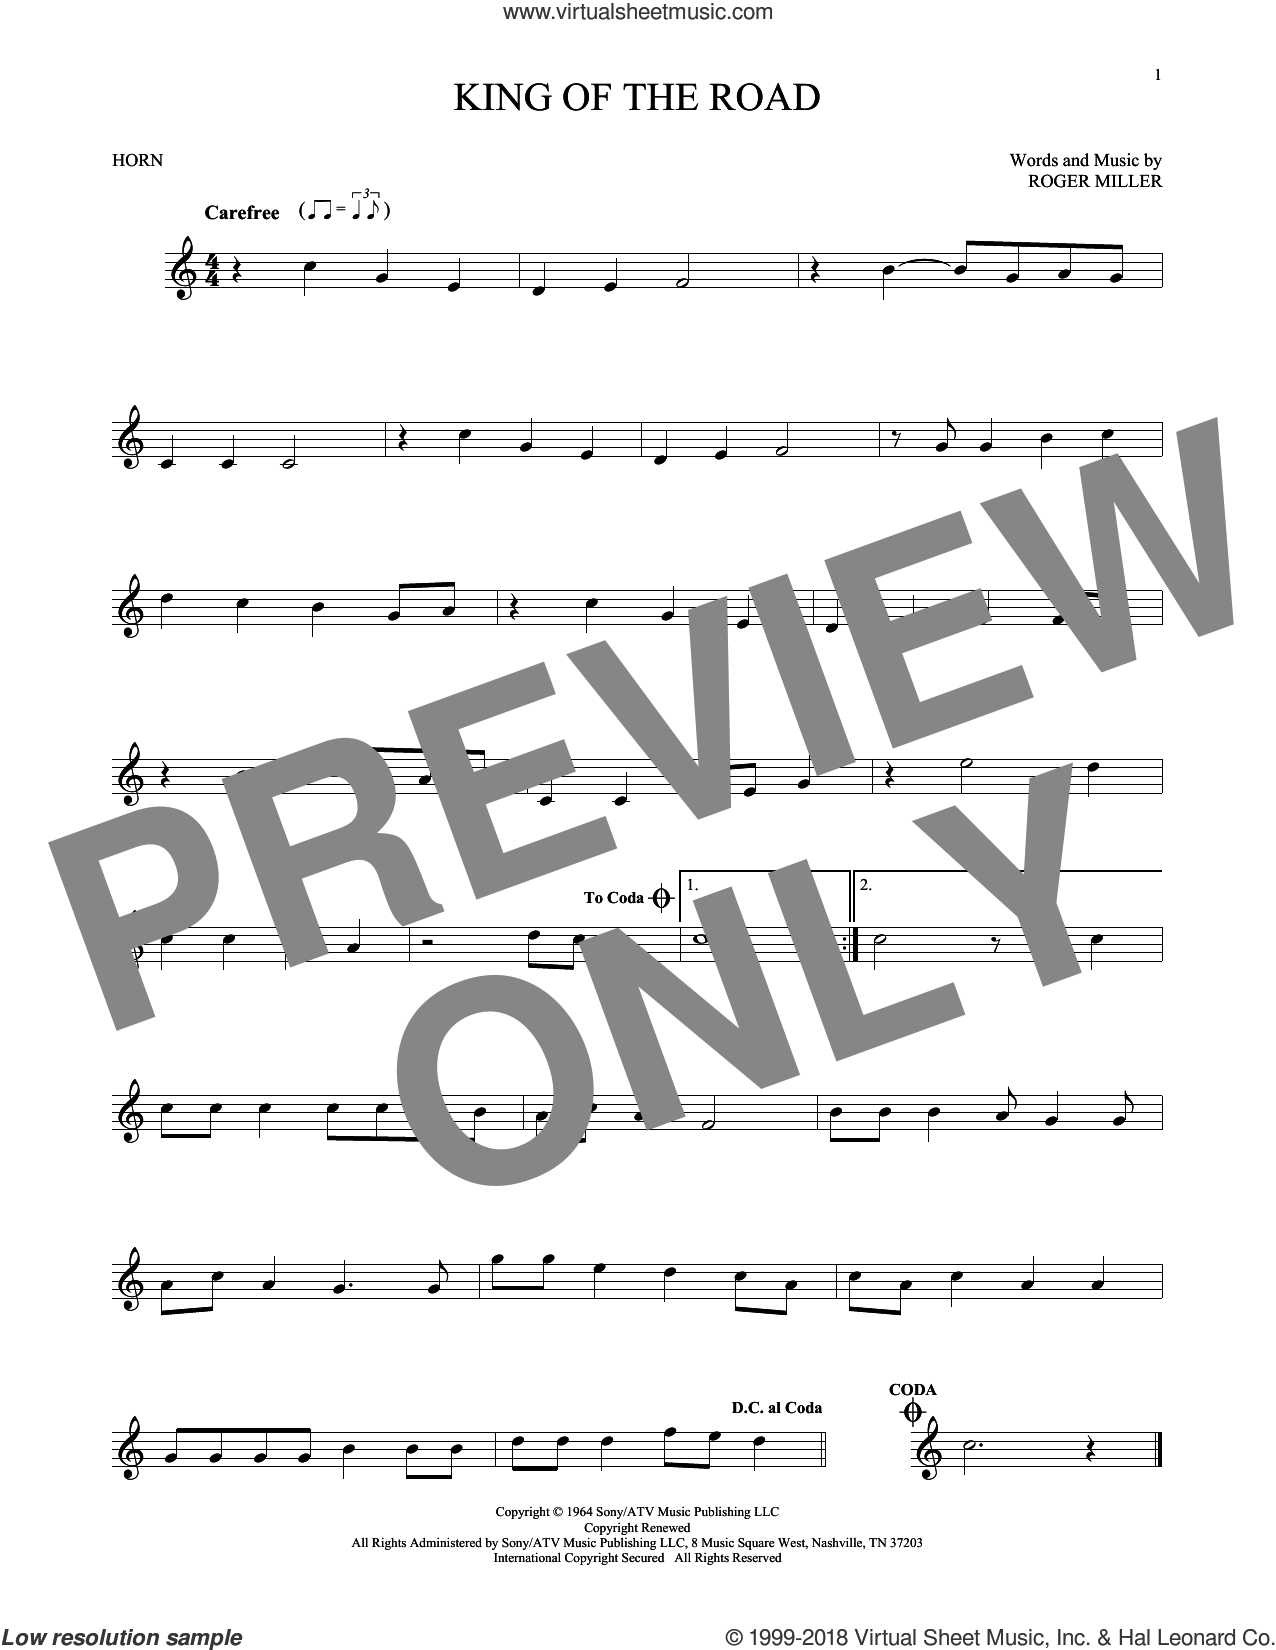 King Of The Road sheet music for horn solo by Roger Miller and Randy Travis, intermediate skill level